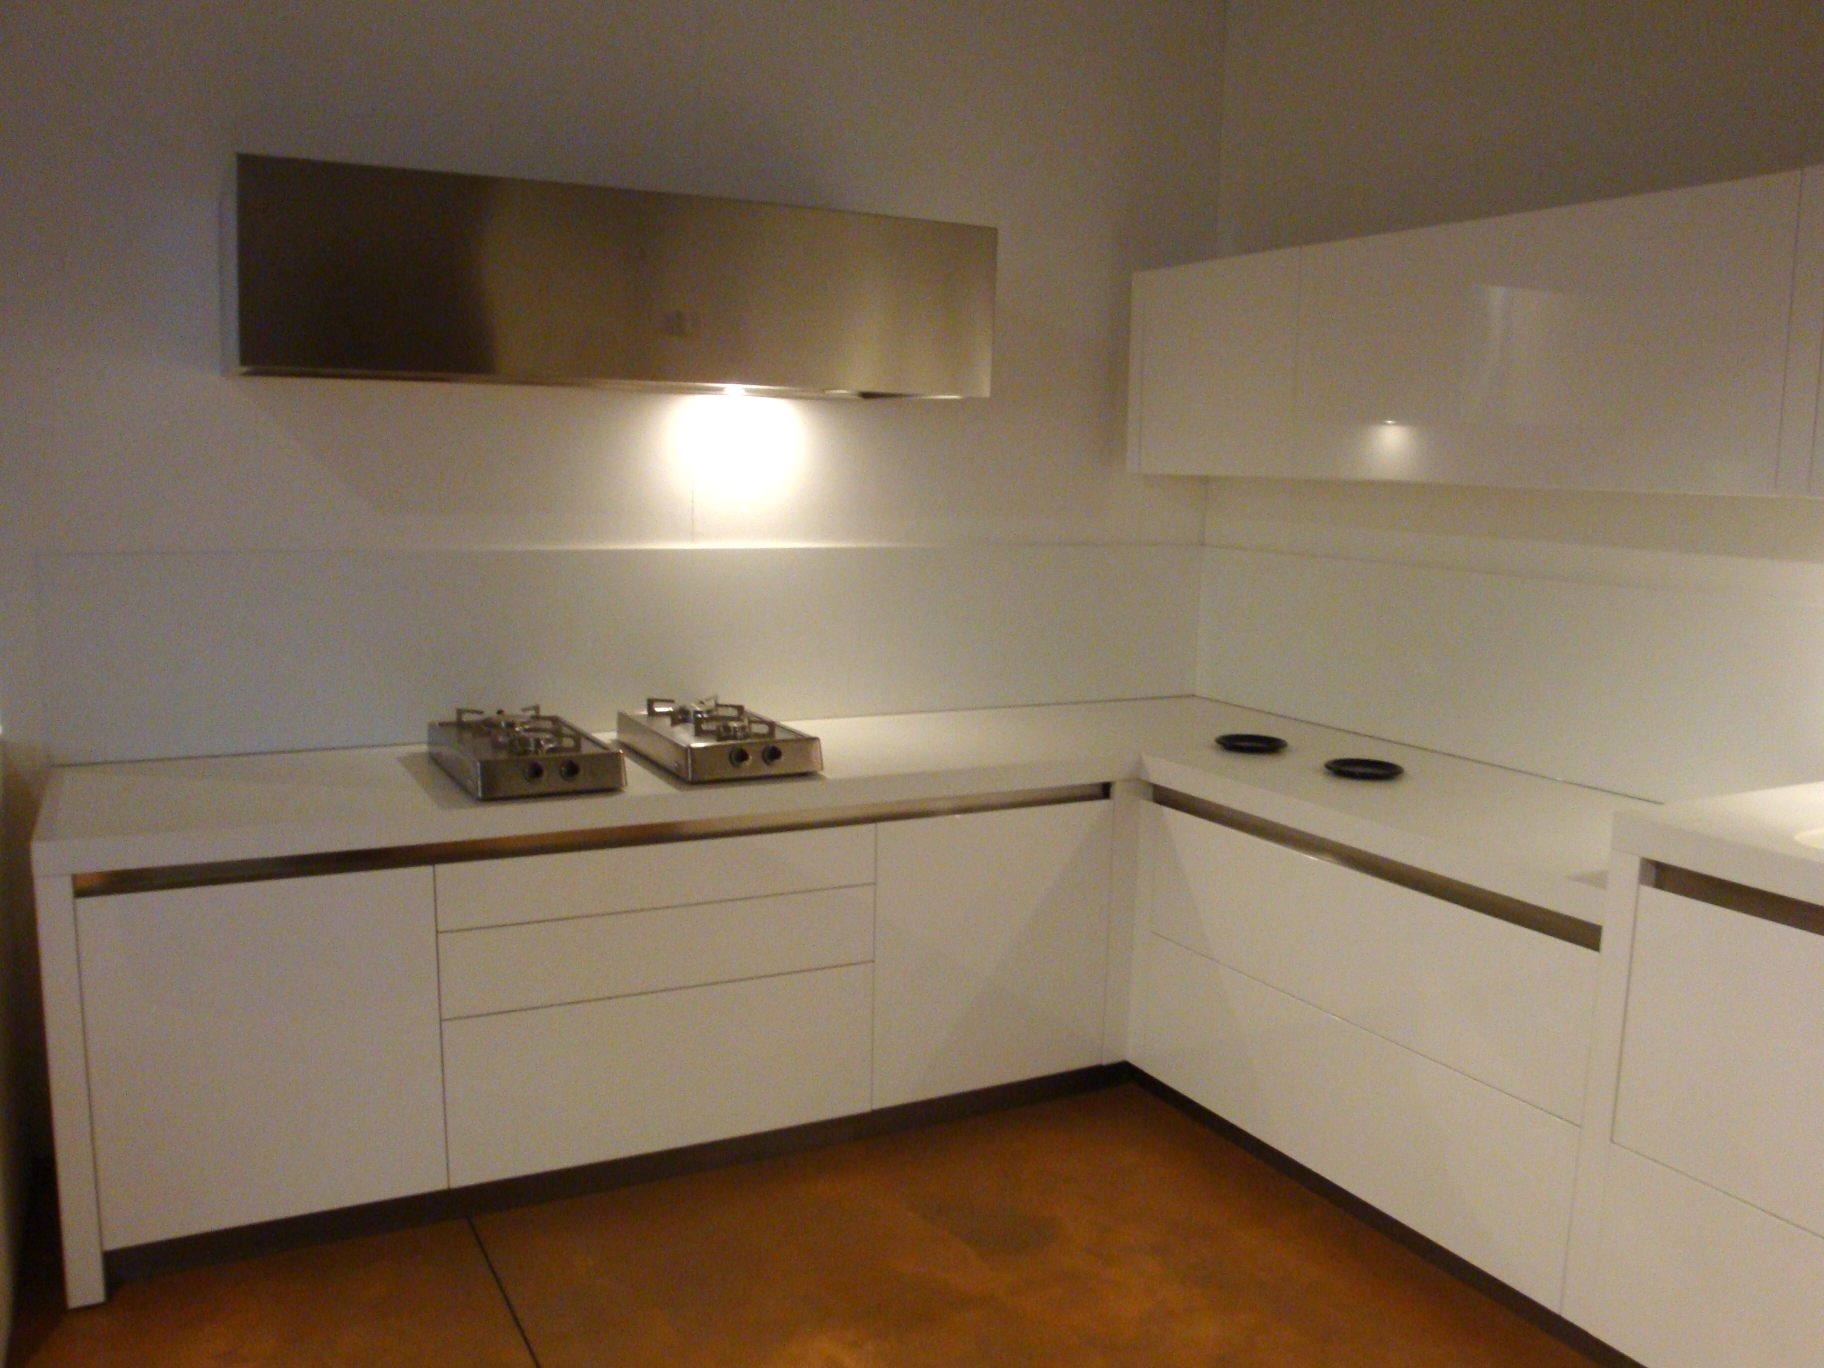 Cucine angolo moderne affordable cucina ad angolo laccata - Cucine moderne ad angolo con isola ...